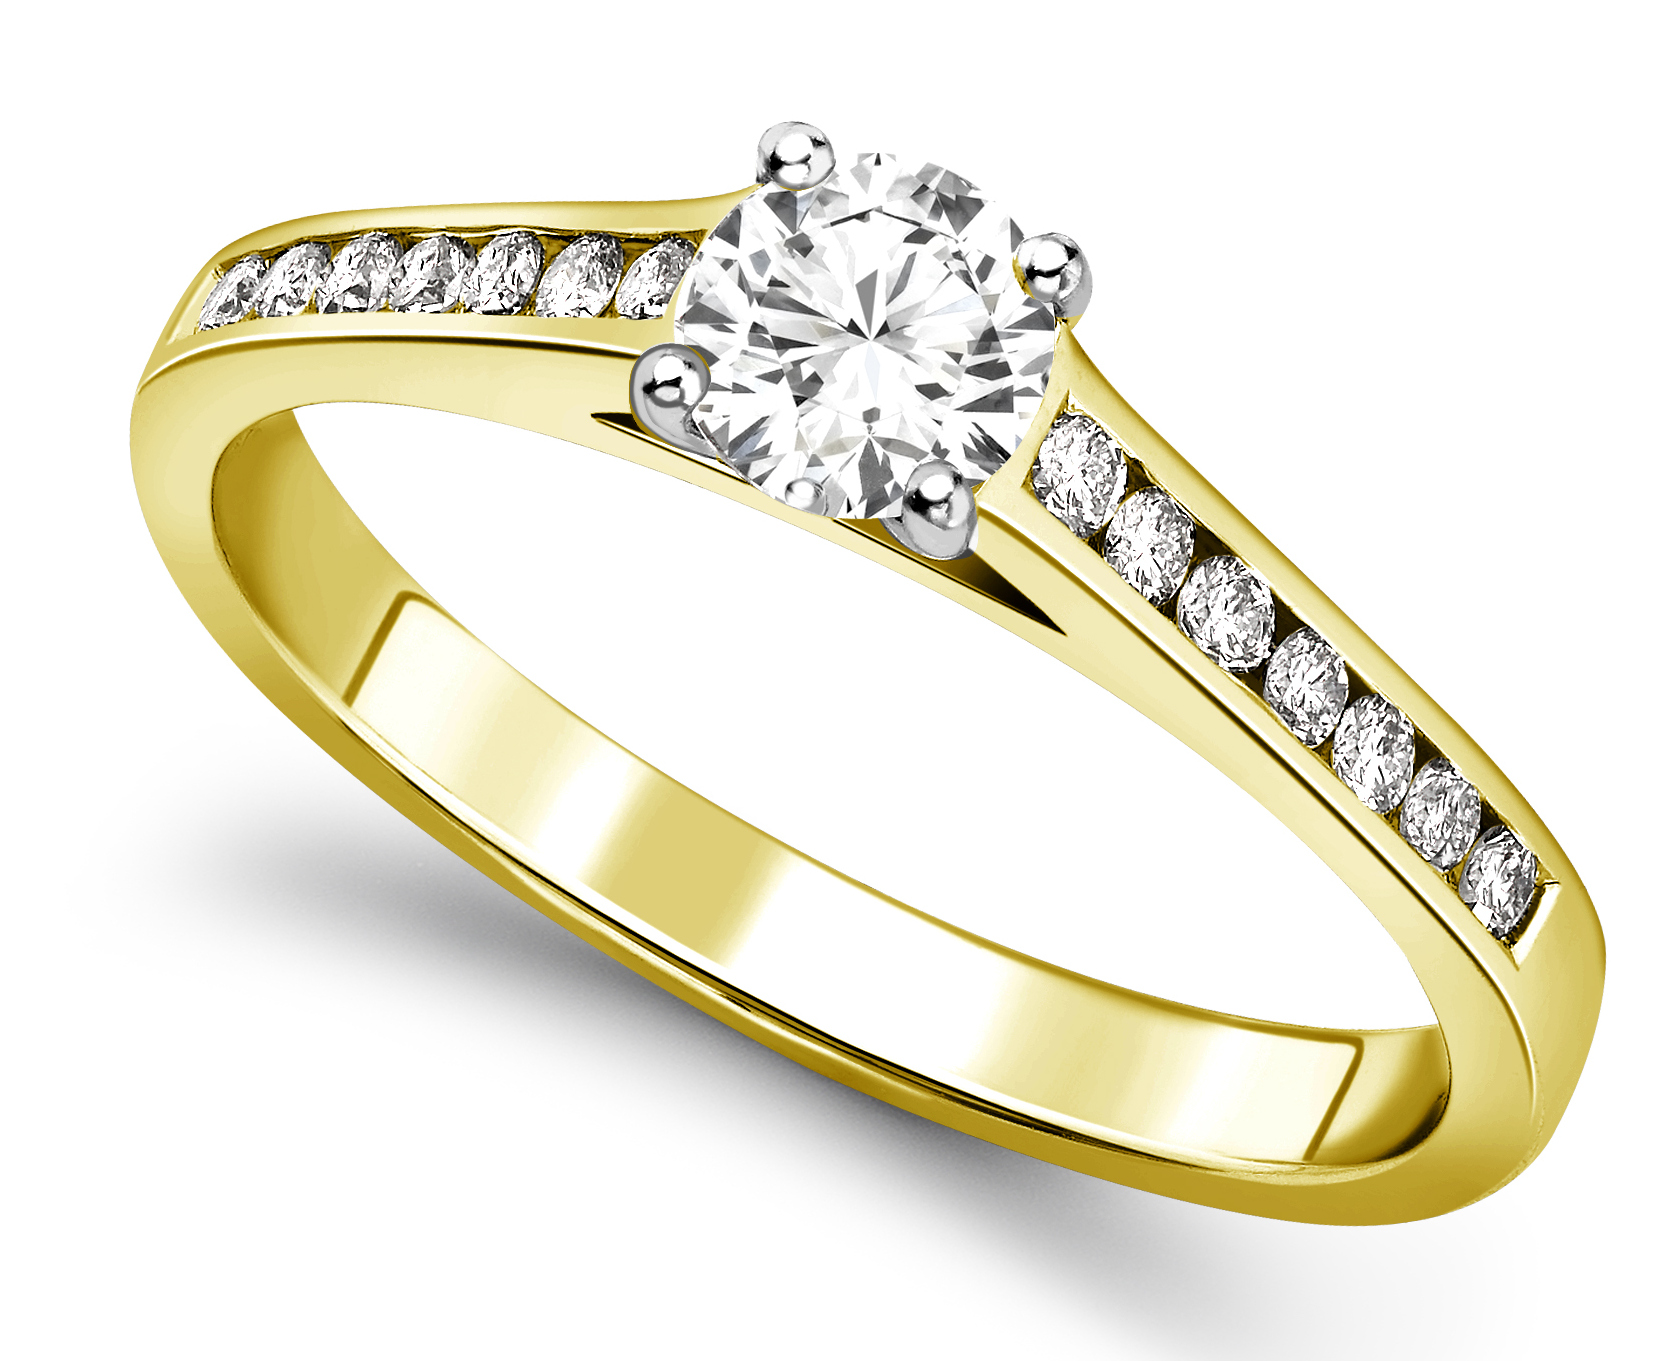 Round Four Claw Yellow Gold Channel Set Engagement Ring CRC739YG Main Image